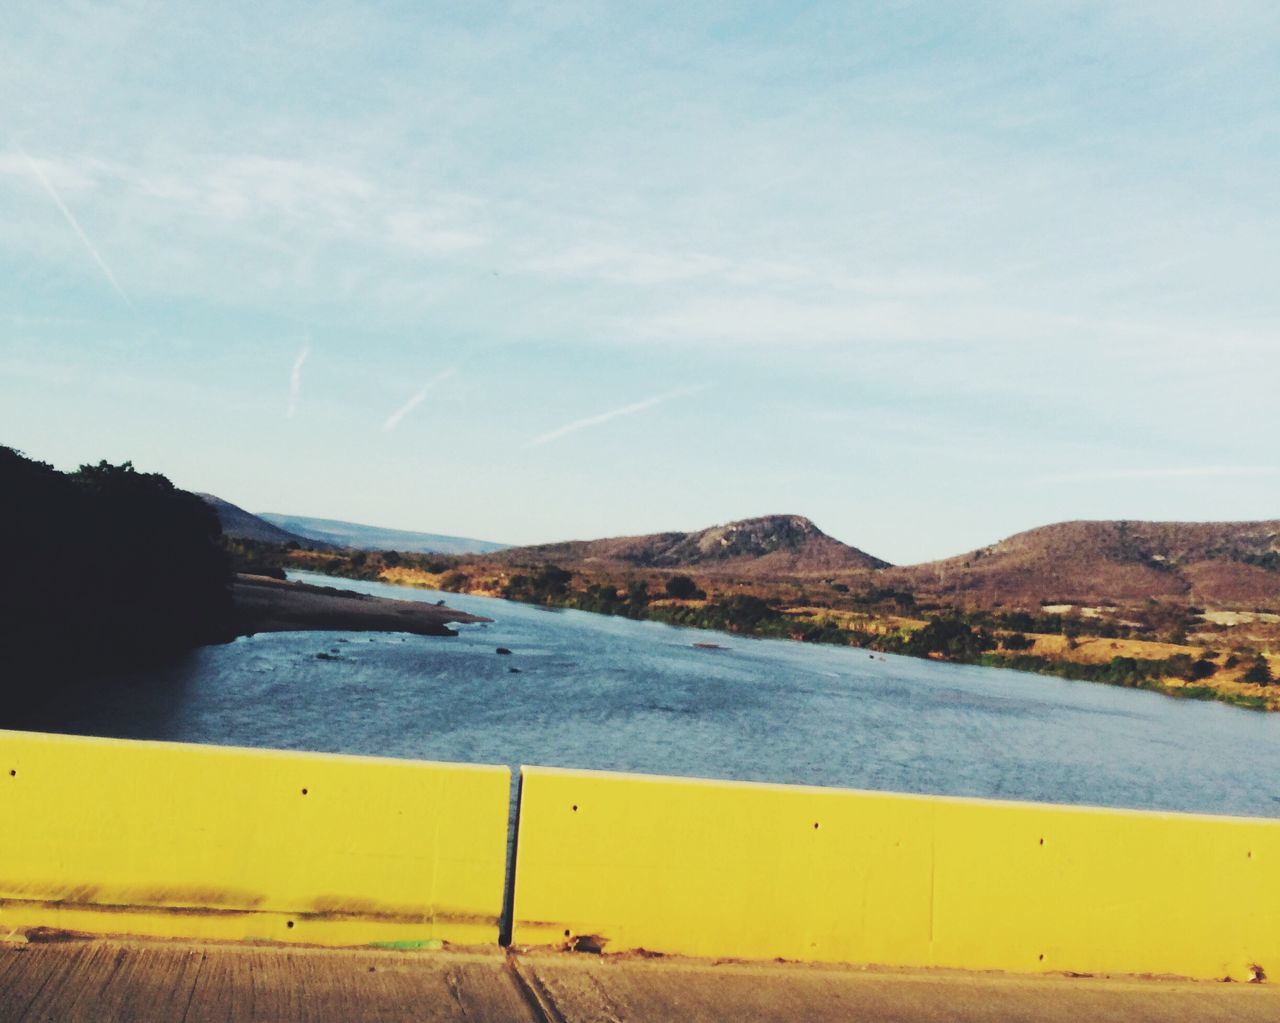 mountain, water, nature, scenics, beauty in nature, tranquility, day, outdoors, no people, river, tranquil scene, yellow, sky, mountain range